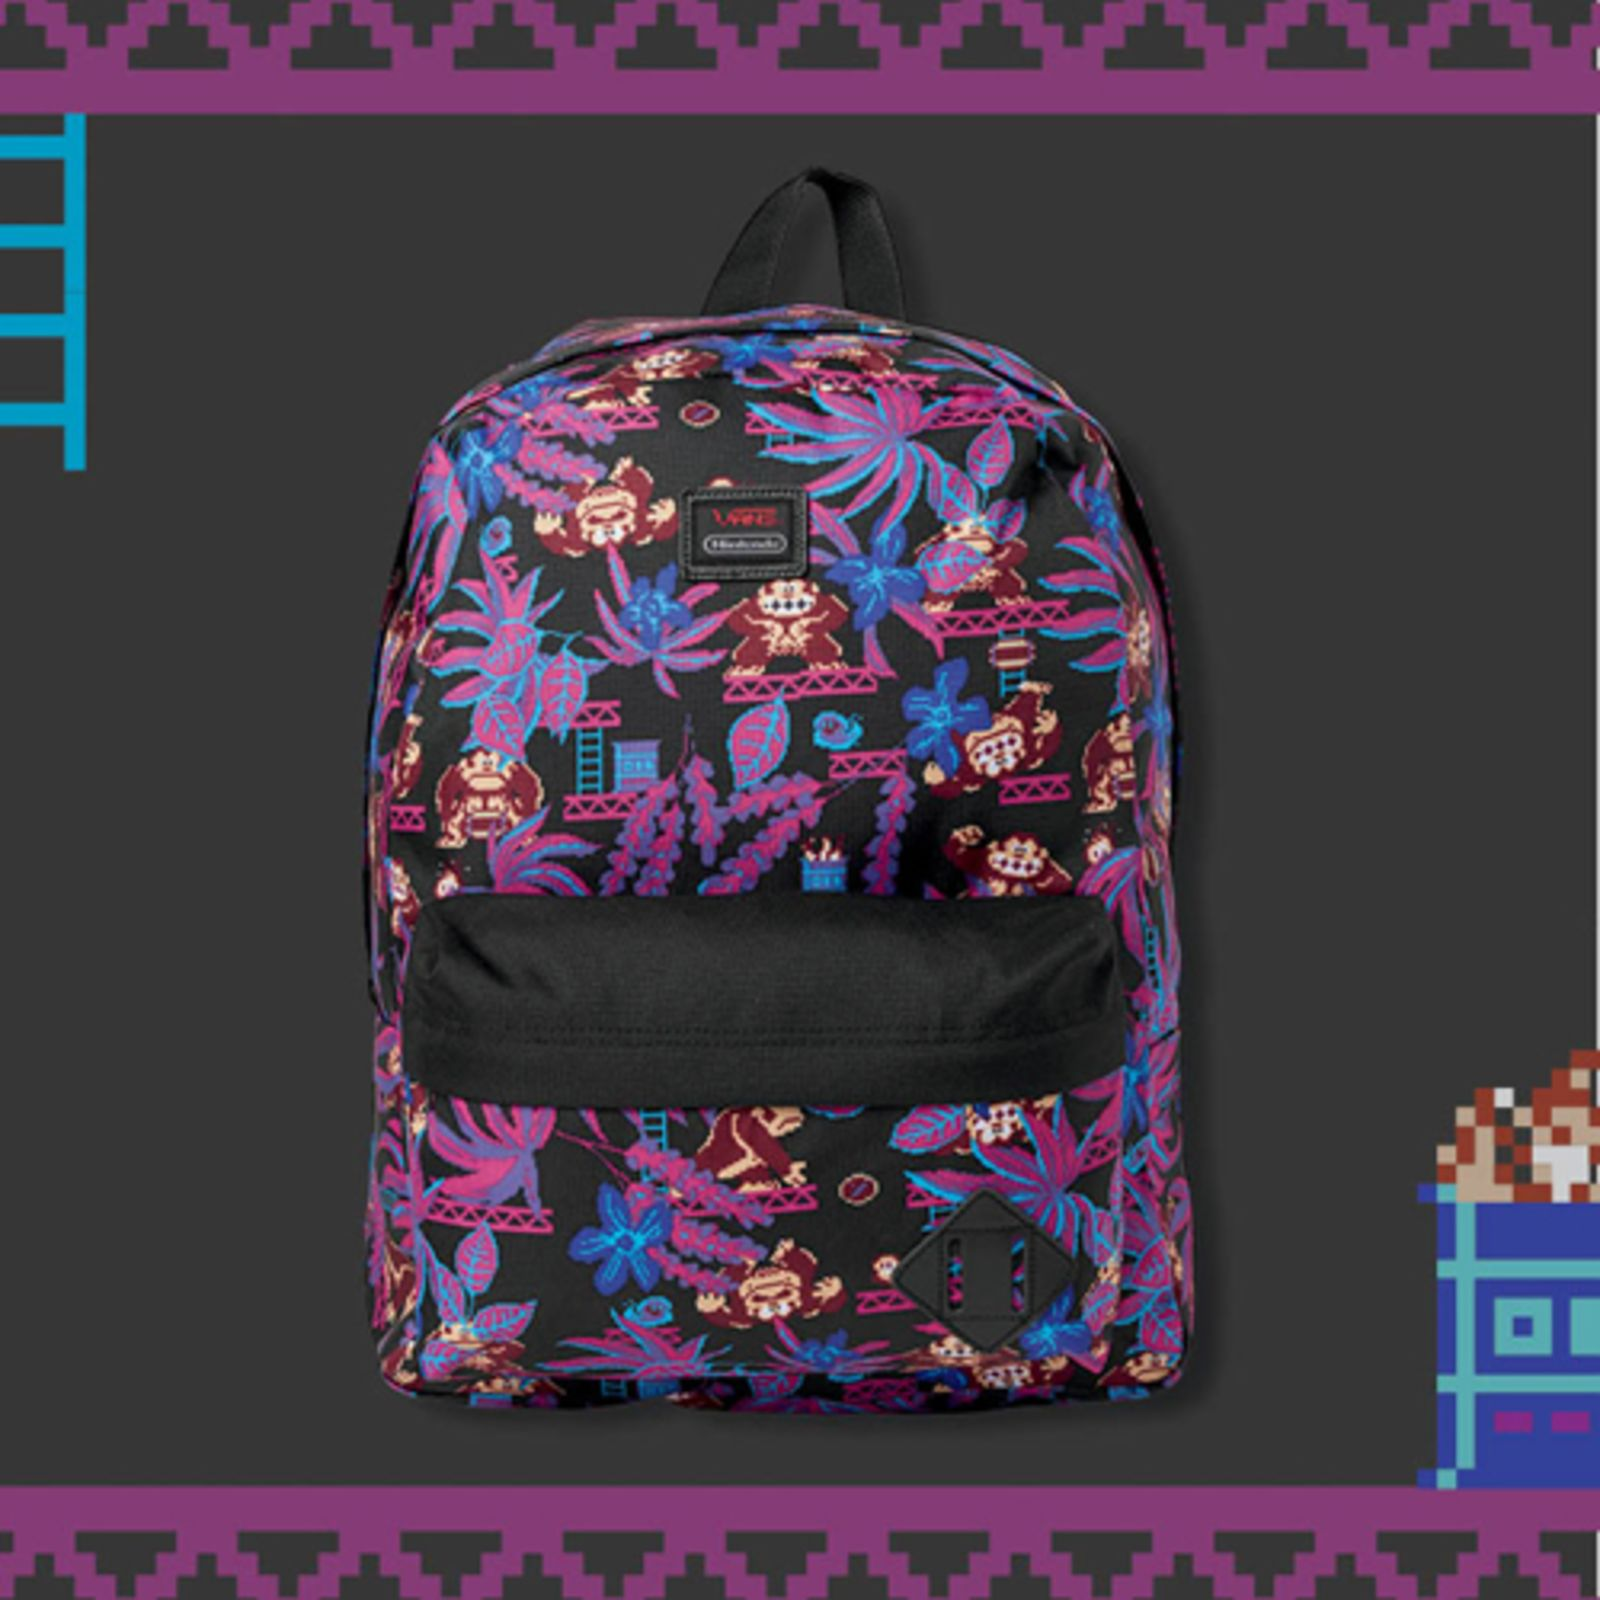 79903a2128 FA16 MBP241 MOldSKool2Backpack DonkeyKong ELEVATED Nintendo Vans Collection  Coming to Australia and NZ